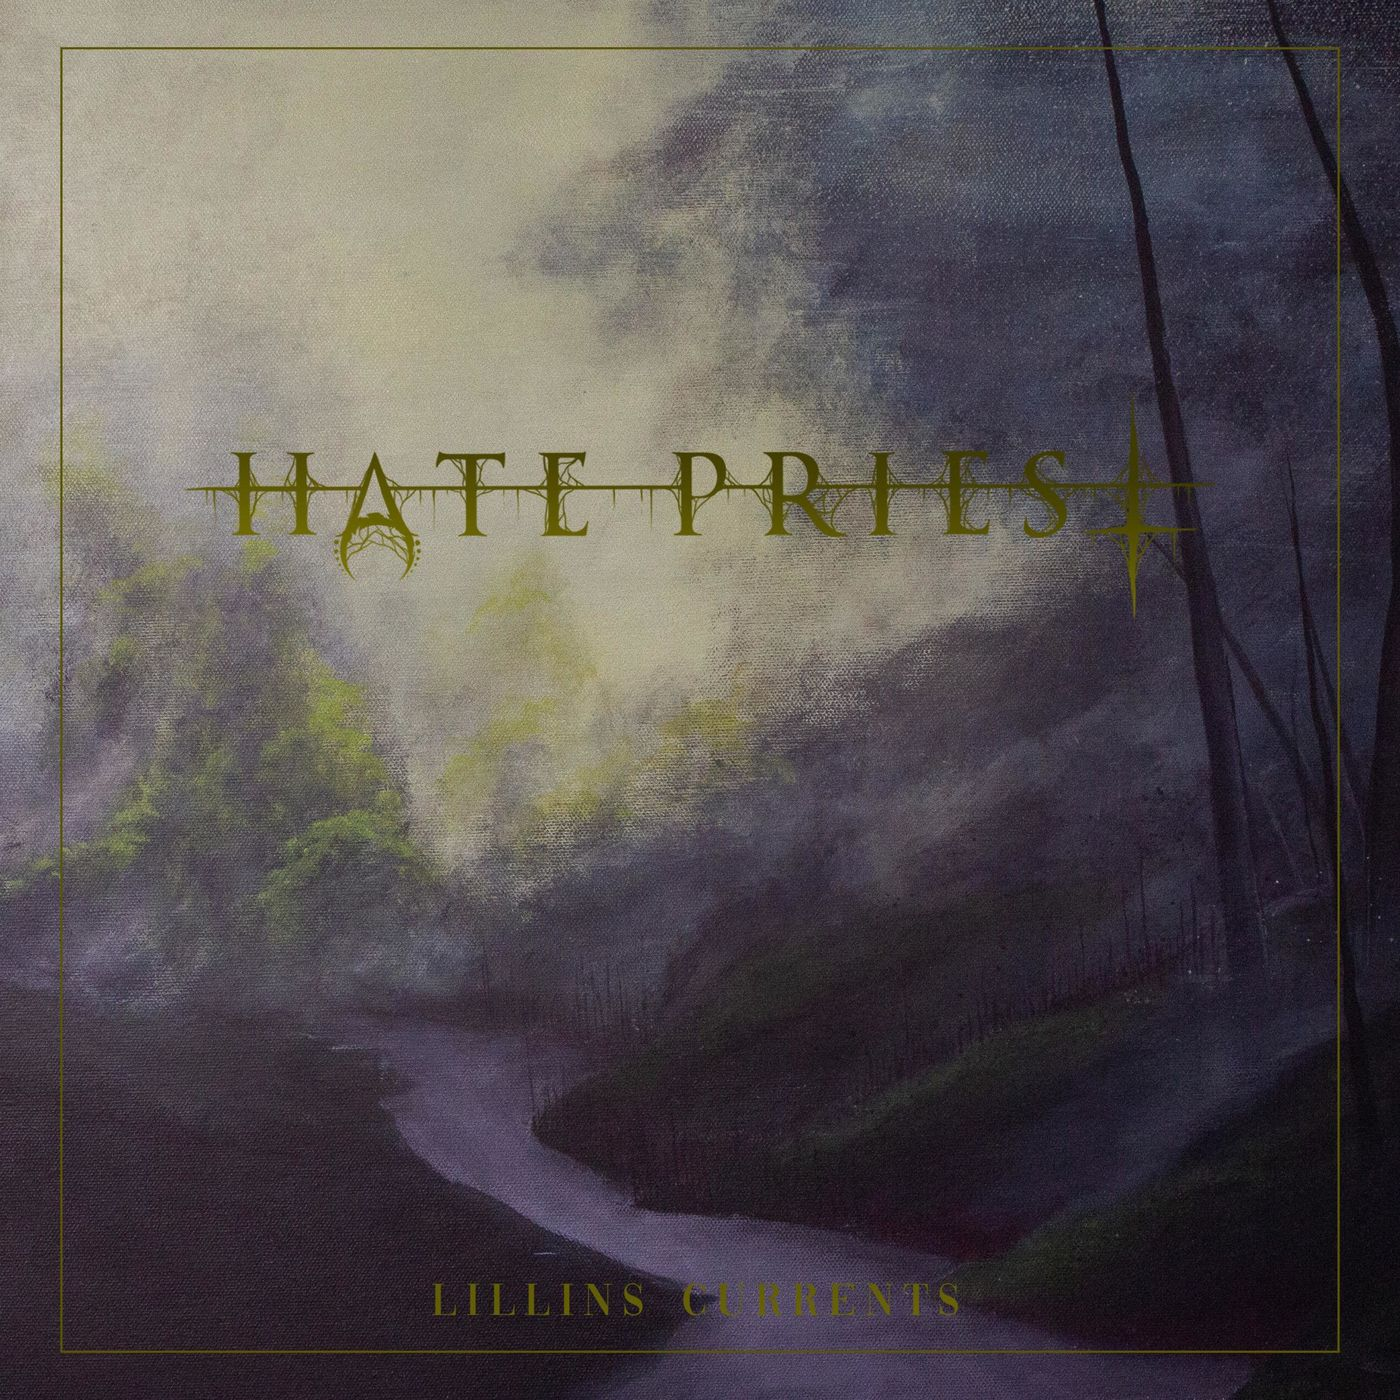 Hate Priest - Lillins Currents (2020)